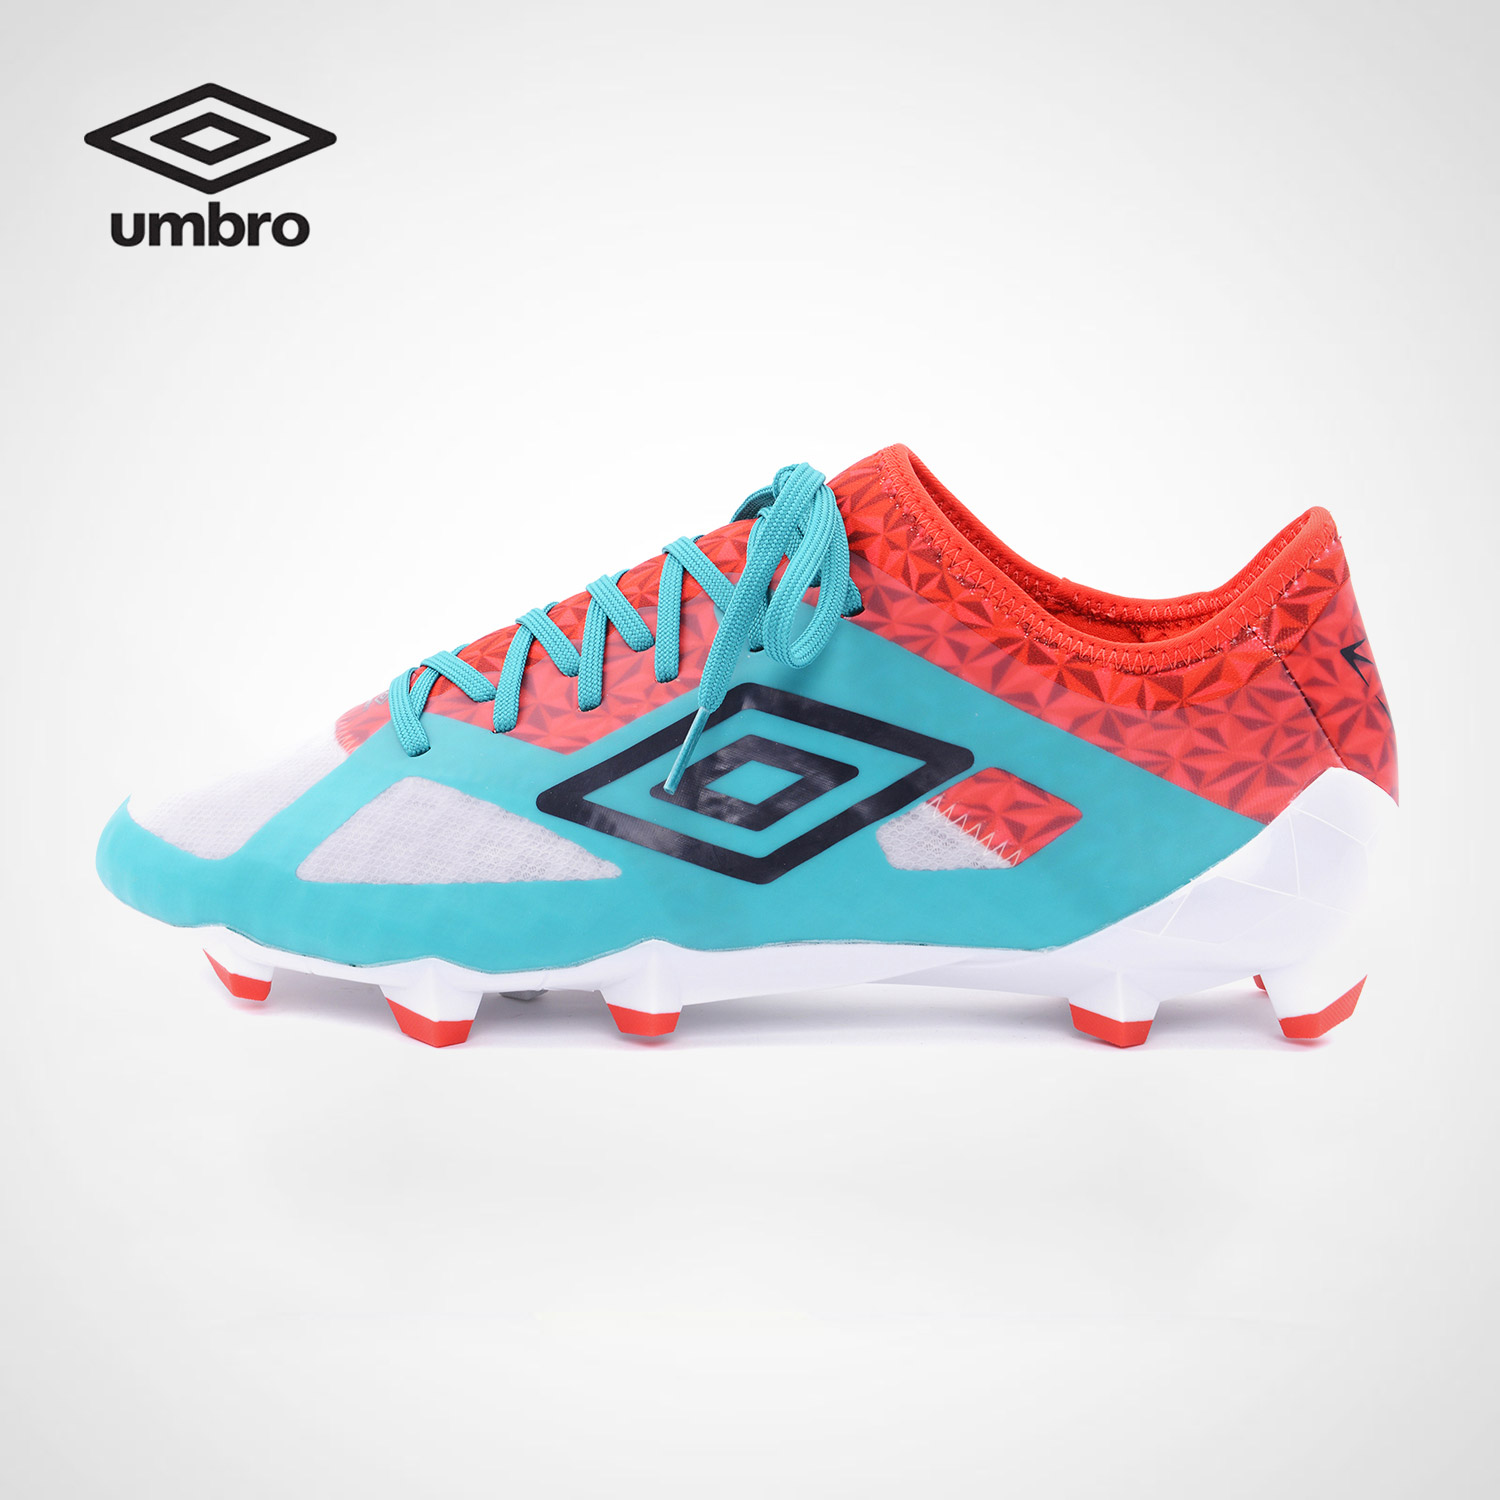 US $103.9 48% OFF|Umbro Men's 2017 Soccer Shoes Football Sports Velocita Zapatos De Futbol Shoes For Soccer Professional soccer shoes UCC90151 in